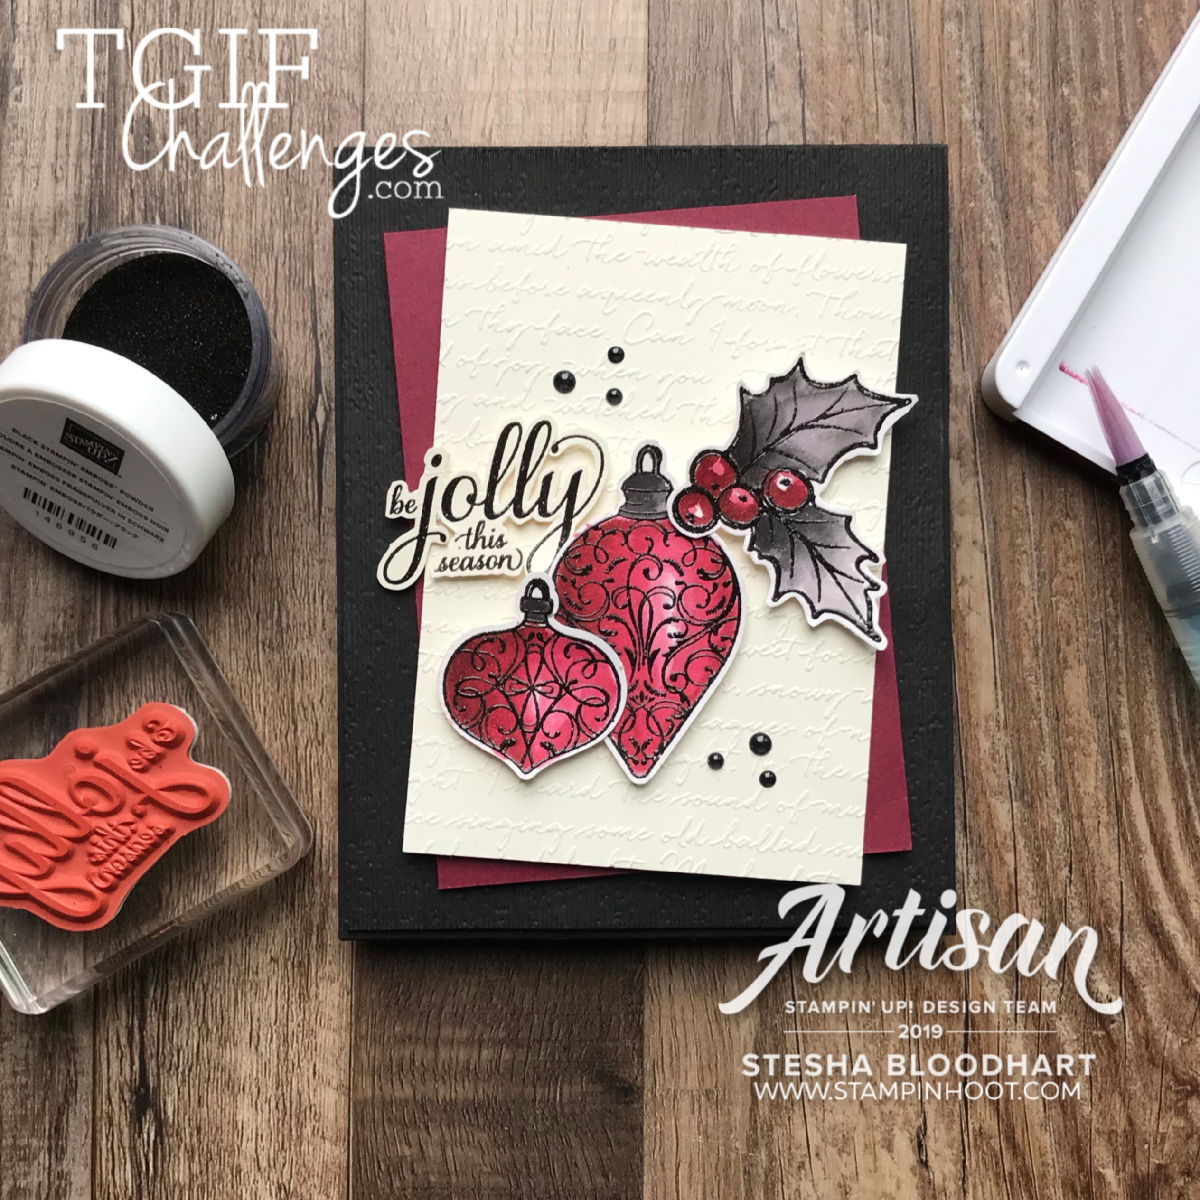 #tgifc228 Color Challenge Christmas Gleaming Bundle by Stampin' Up! Handmade Card by Stesha Bloodhart, Stampin' Hoot!